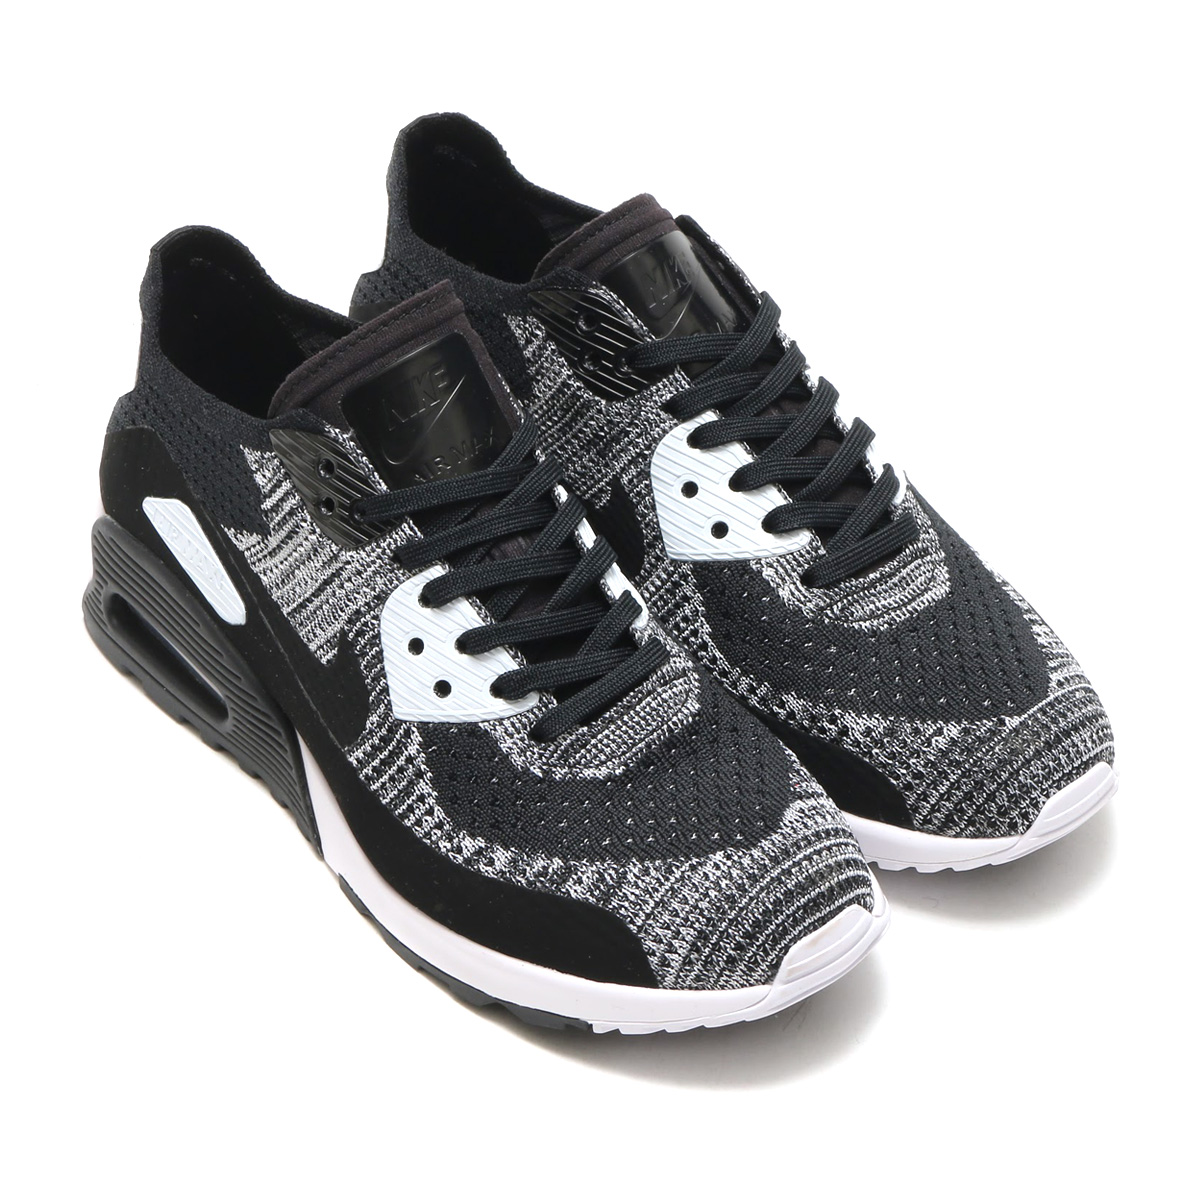 best website e79bf 6d72a  送料無料 ナイキ エアマックス 90   NIKE AIR MAX 90 ULTRA 2.0 SE GS anthracite  black- white  スニーカー ...